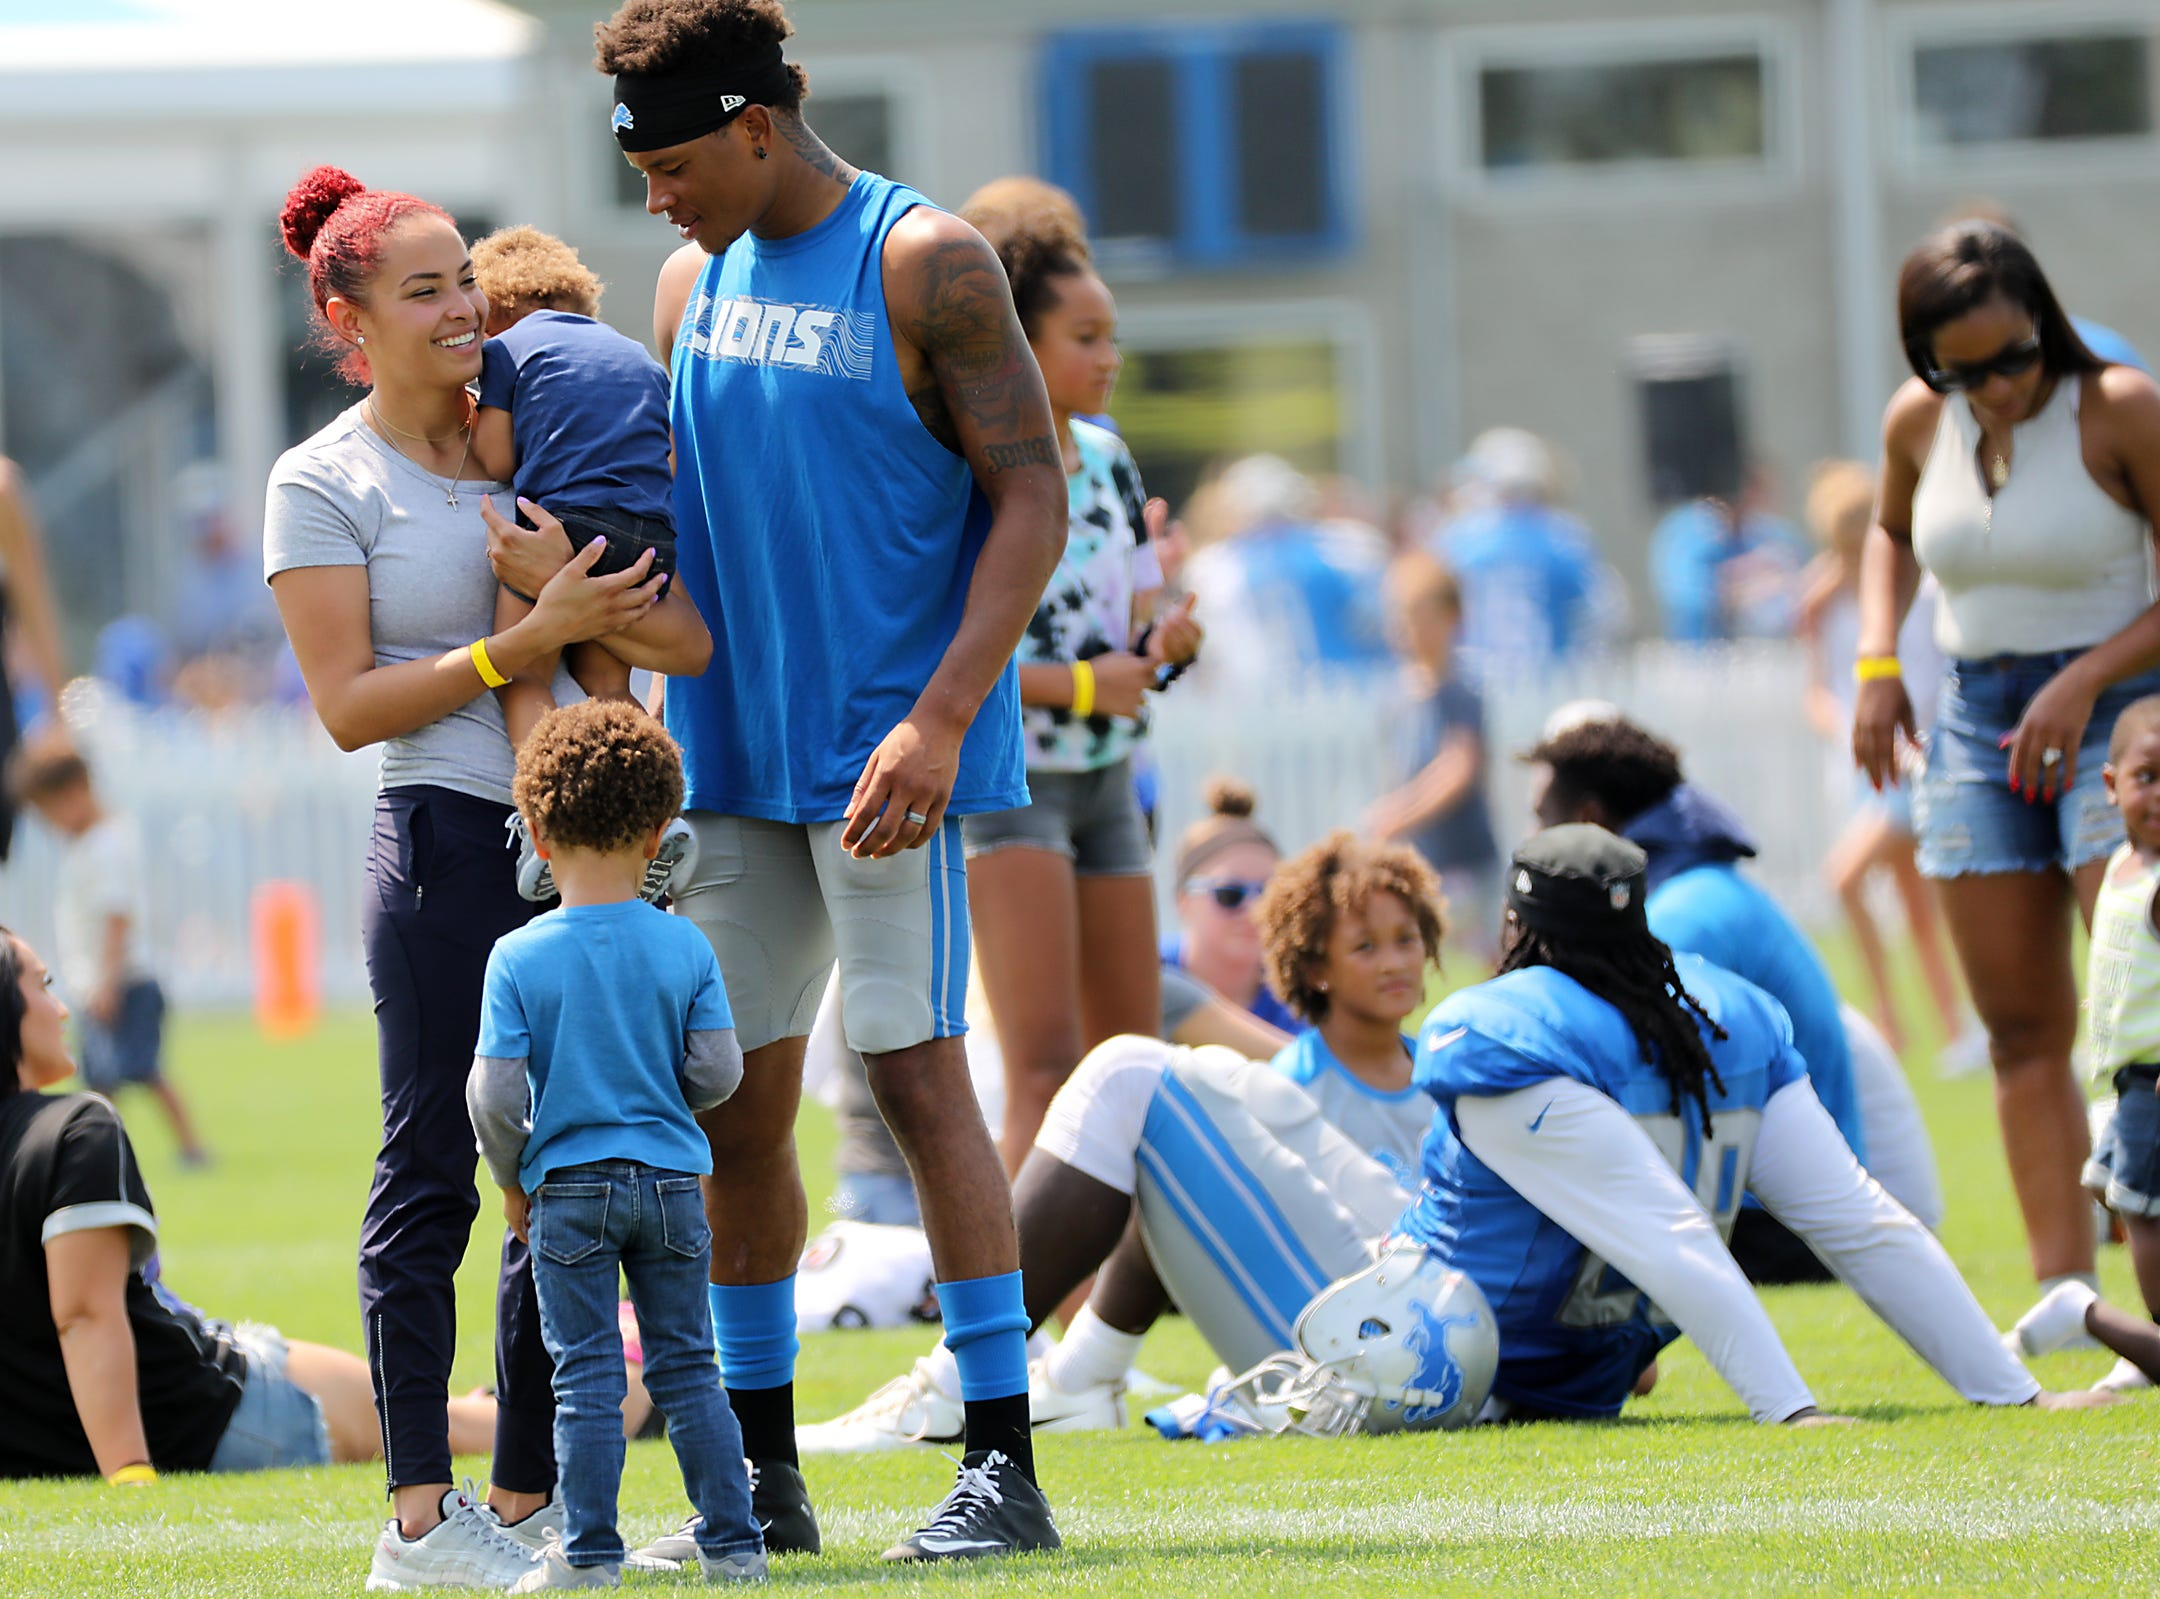 Detroit Lions wide receiver Marvin Jones Jr. greets his family after the Detroit Lions training camp with the New York Giants on Tuesday, Aug. 14, 2018.